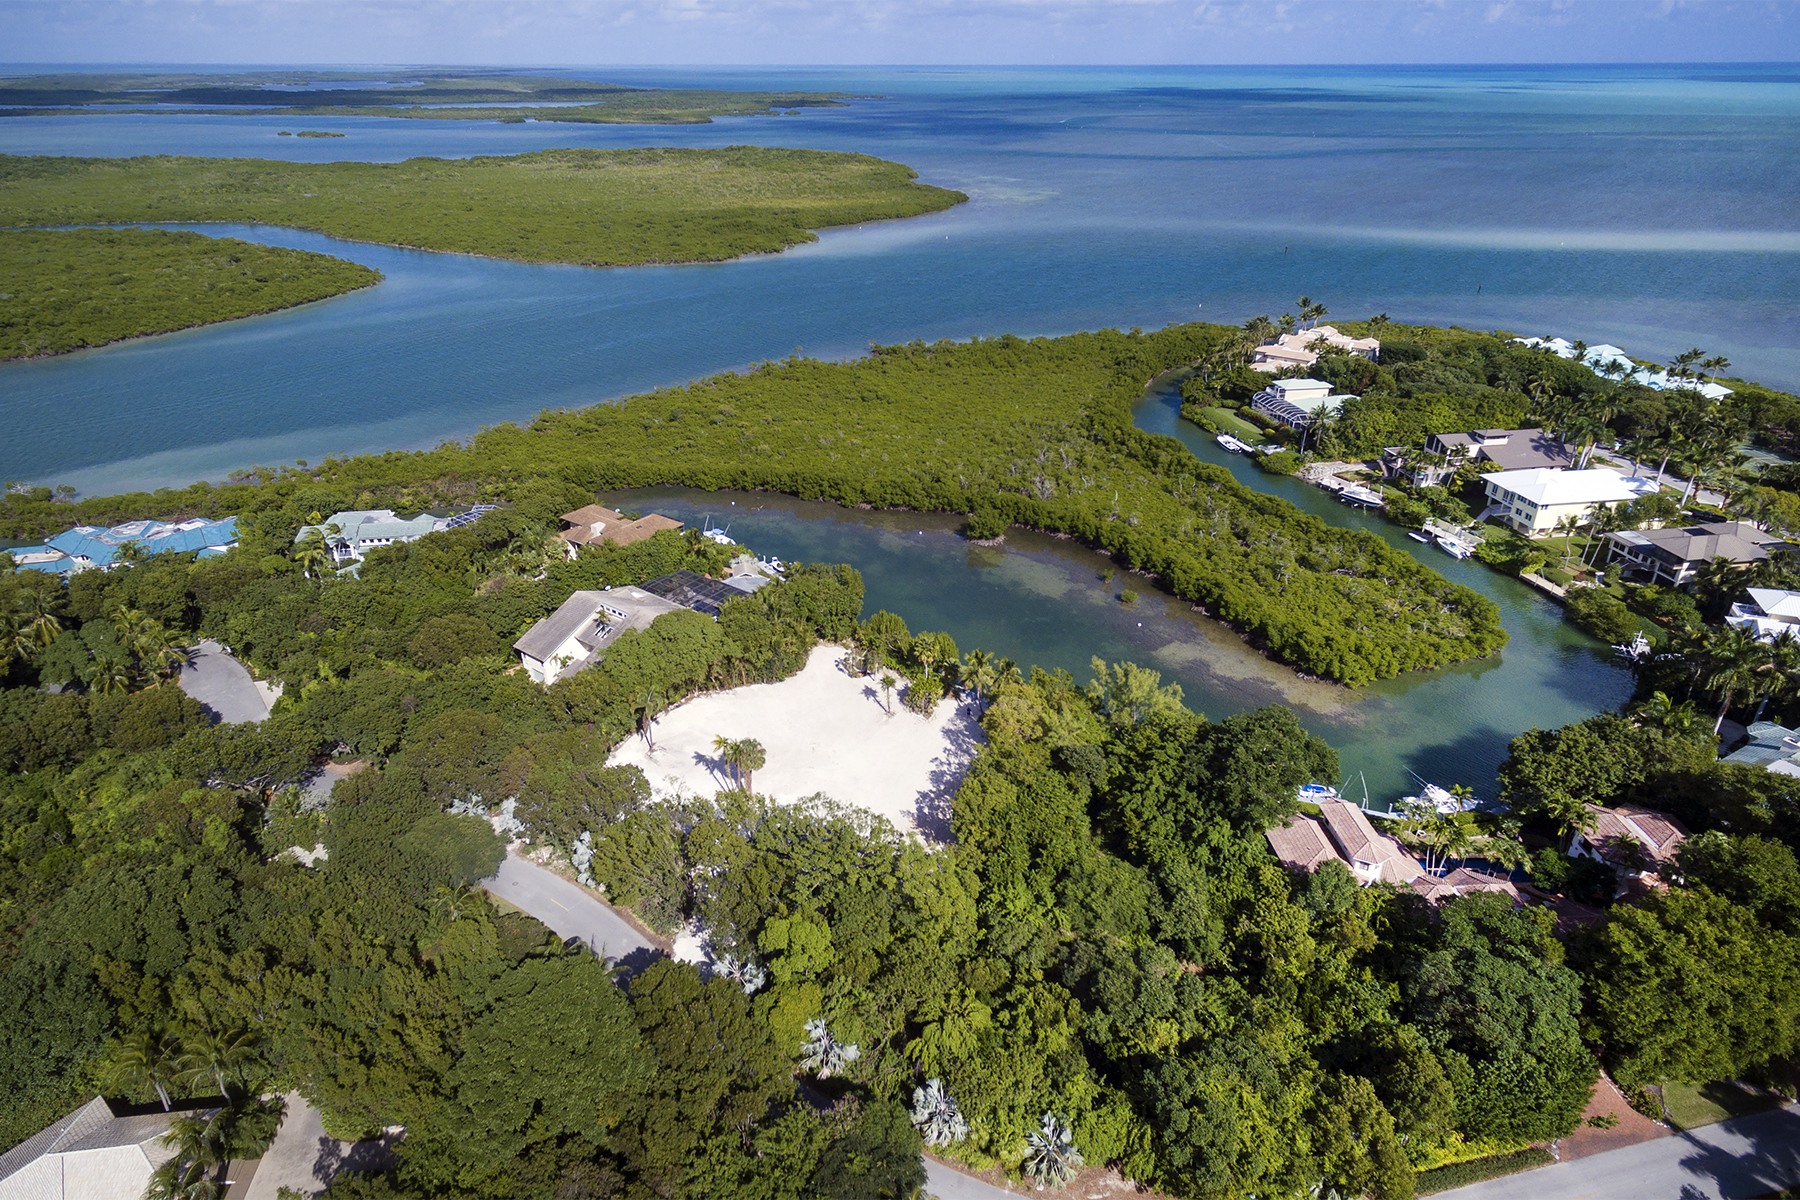 Land for Sale at Expansive Location to Build Your Dream Home at Ocean Reef 40-42 Cardinal Lane Key Largo, Florida 33037 United States